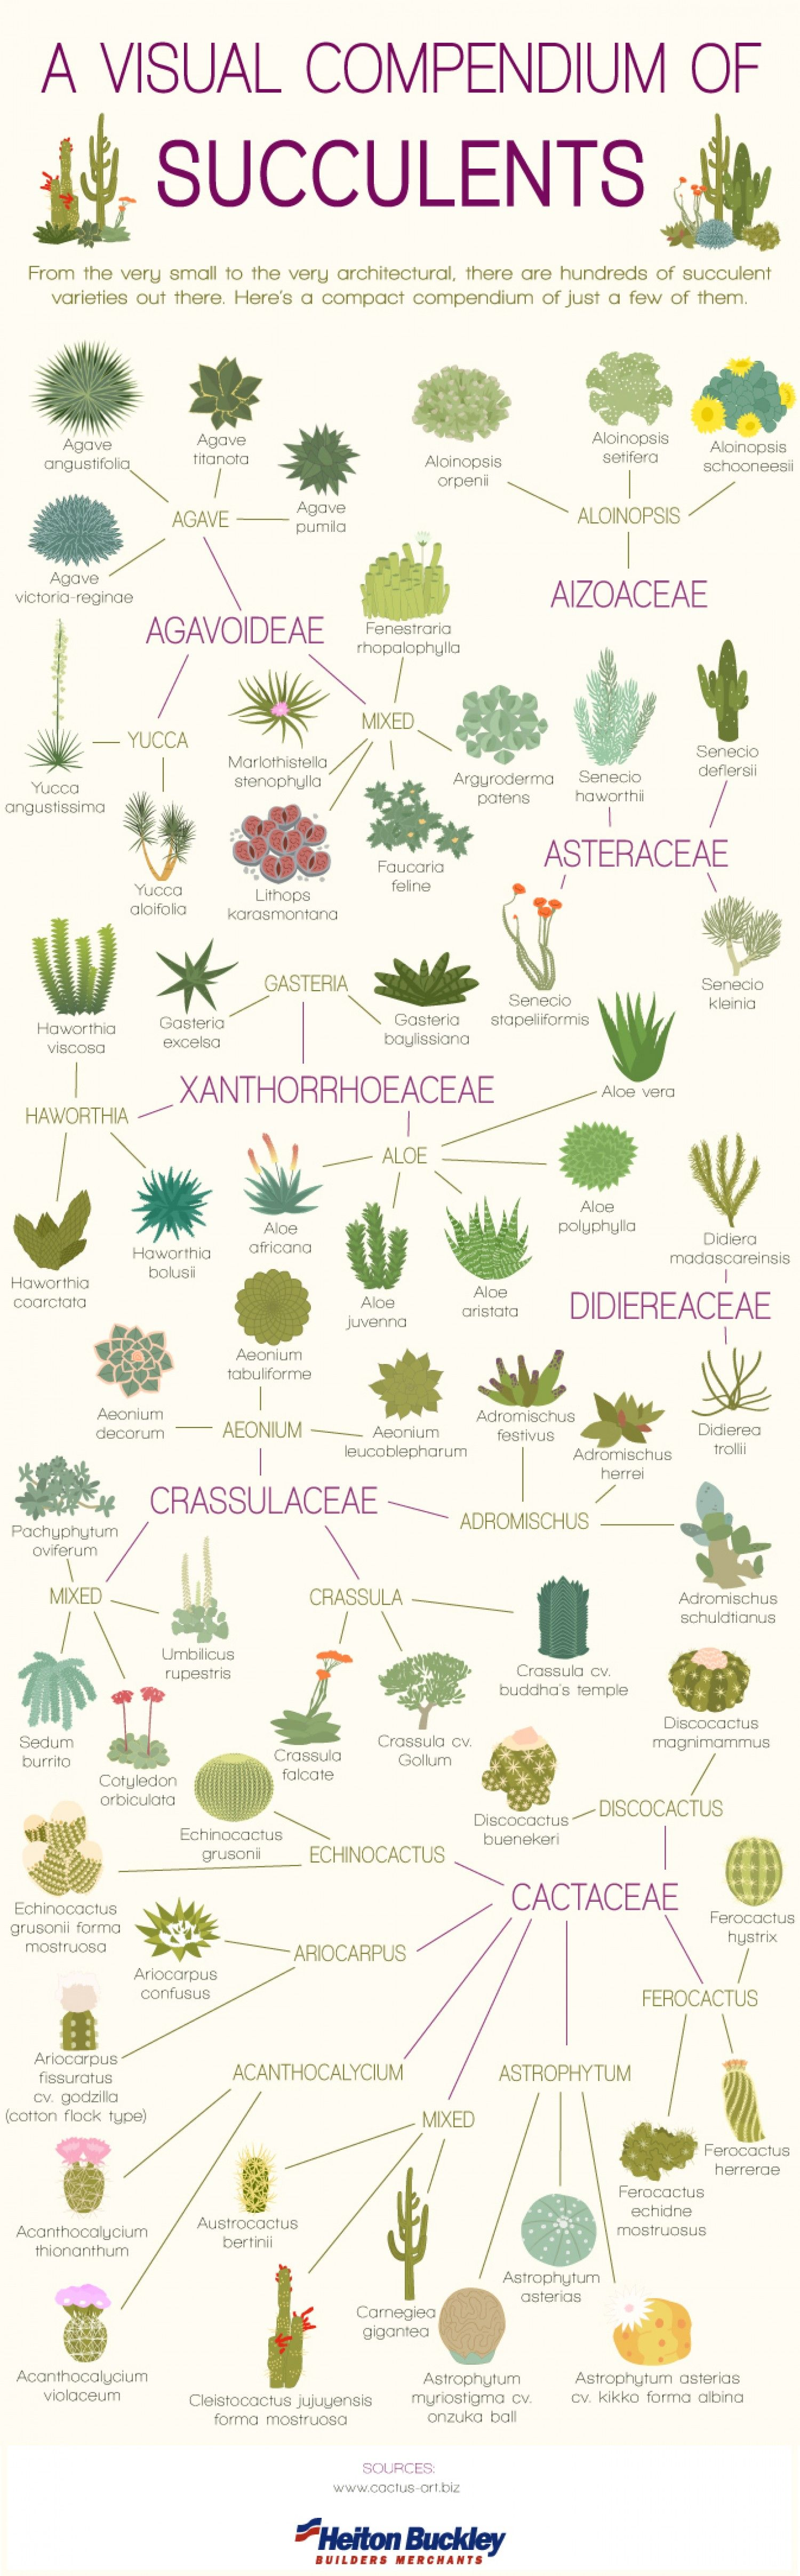 House plant identification tool - Bringing All The Plant Babies Back To School Next Year